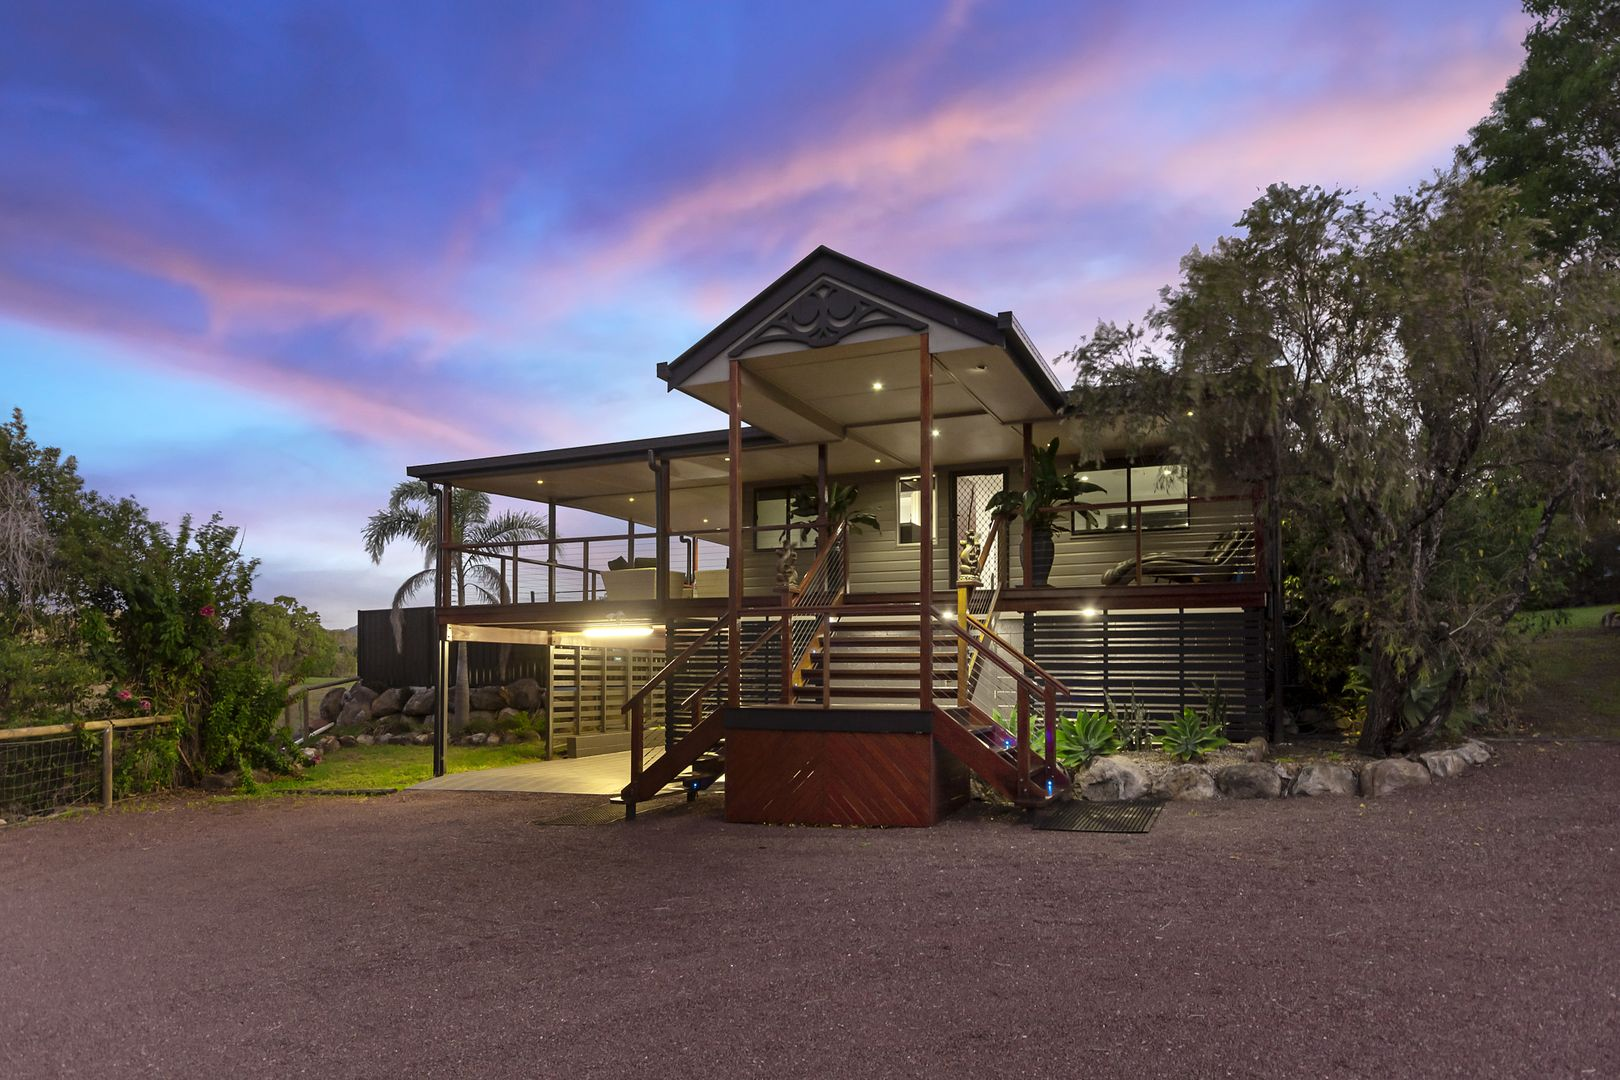 507 Boonah-rathdowney Rd, Dugandan QLD 4310, Image 0